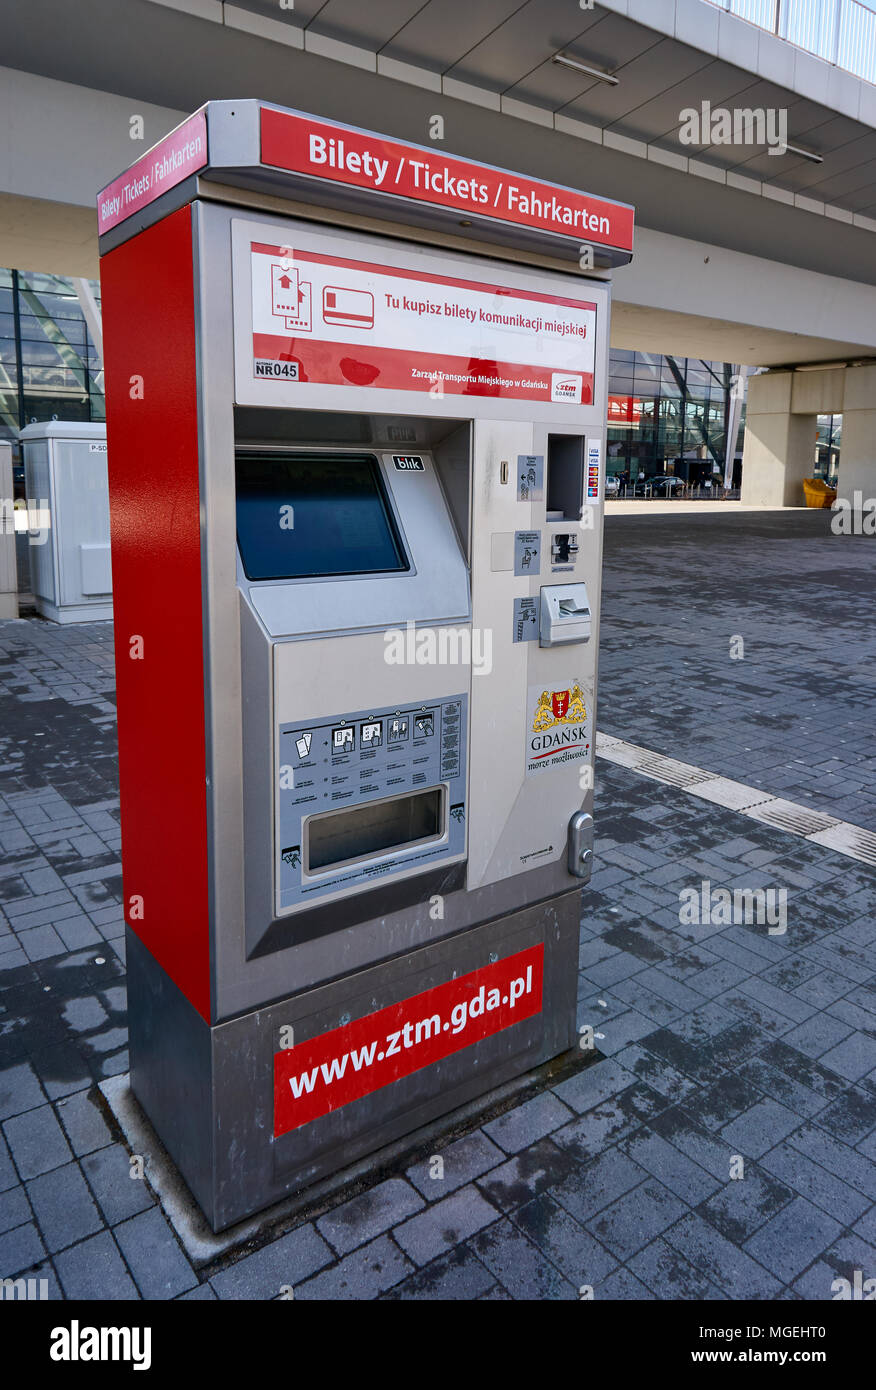 Wybitny Ticket machine for public transport in Gdansk, Poland Stock Photo UP56